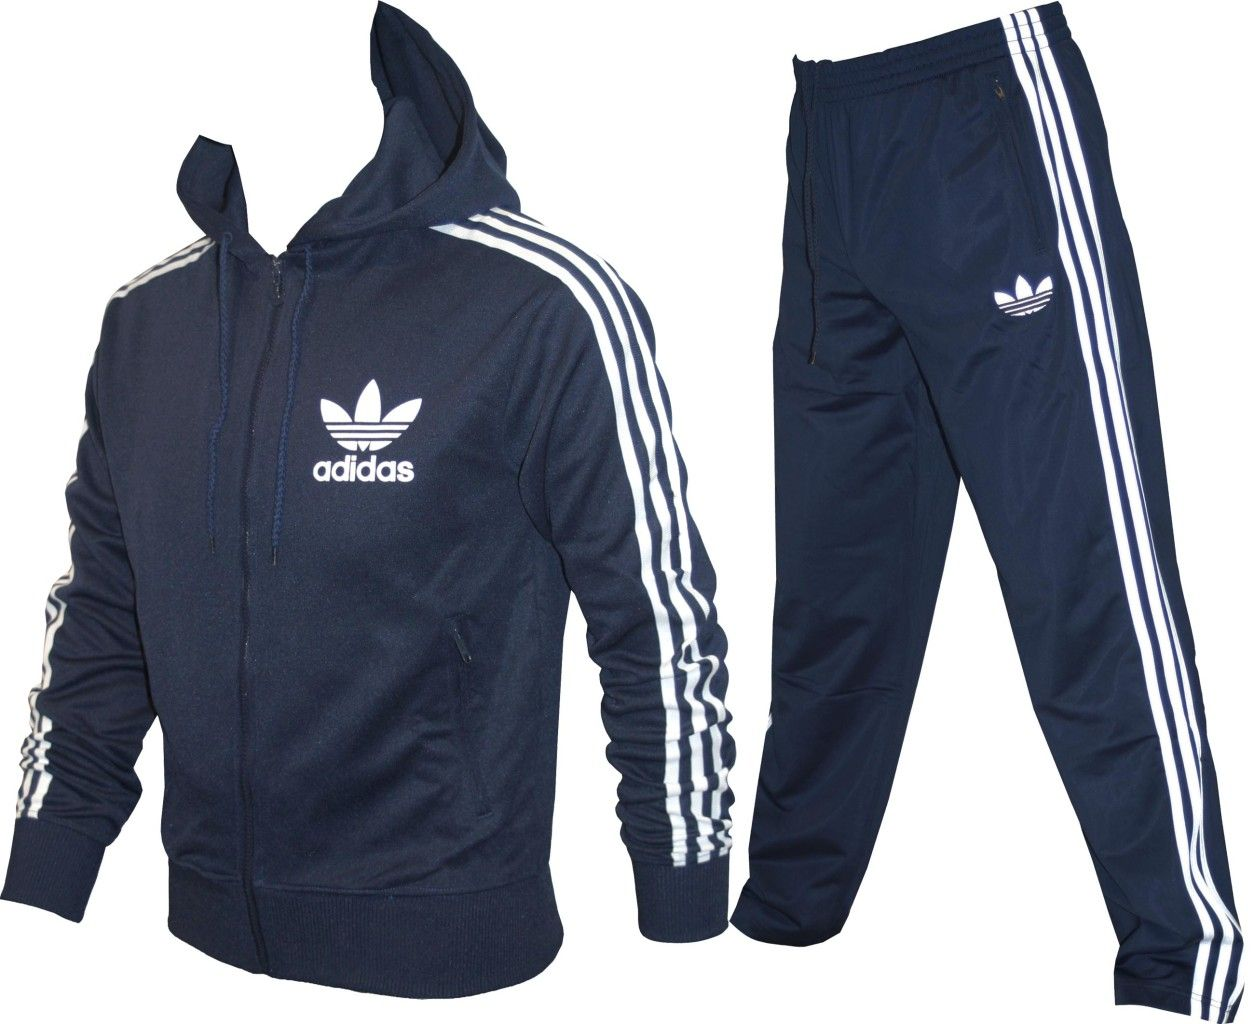 run dmc adidas tracksuit   MENS ADIDAS ORIGINALS 3 STRIPES TRACKSUIT NAVY S  M L XL   eBay 4889d532cb